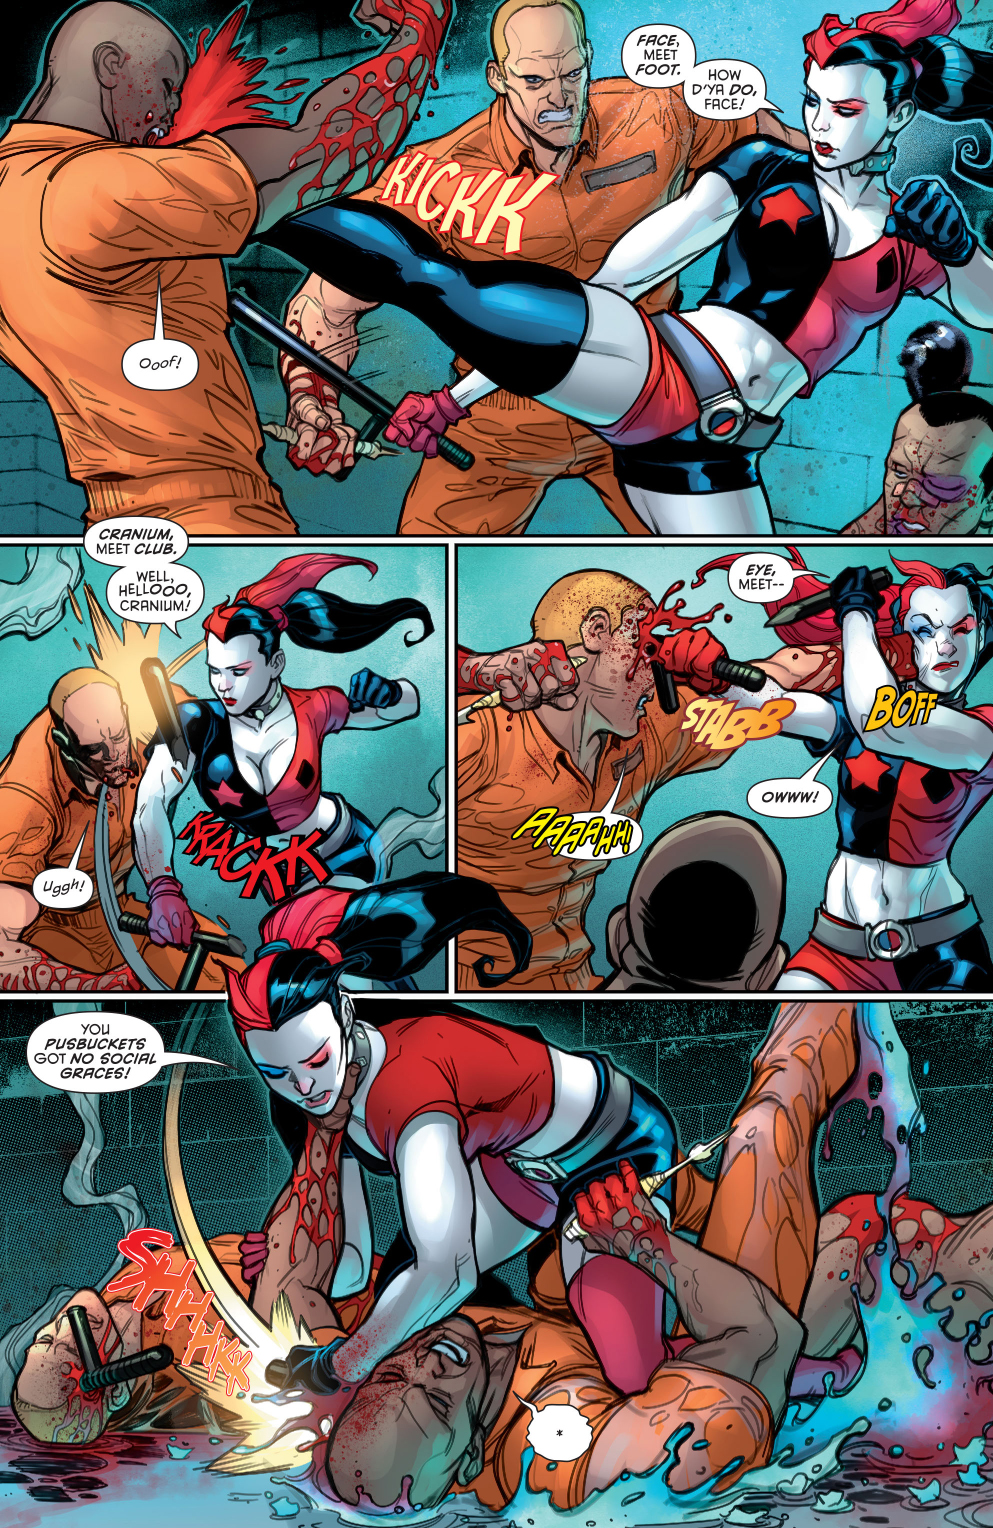 harley quinn in a prison fight